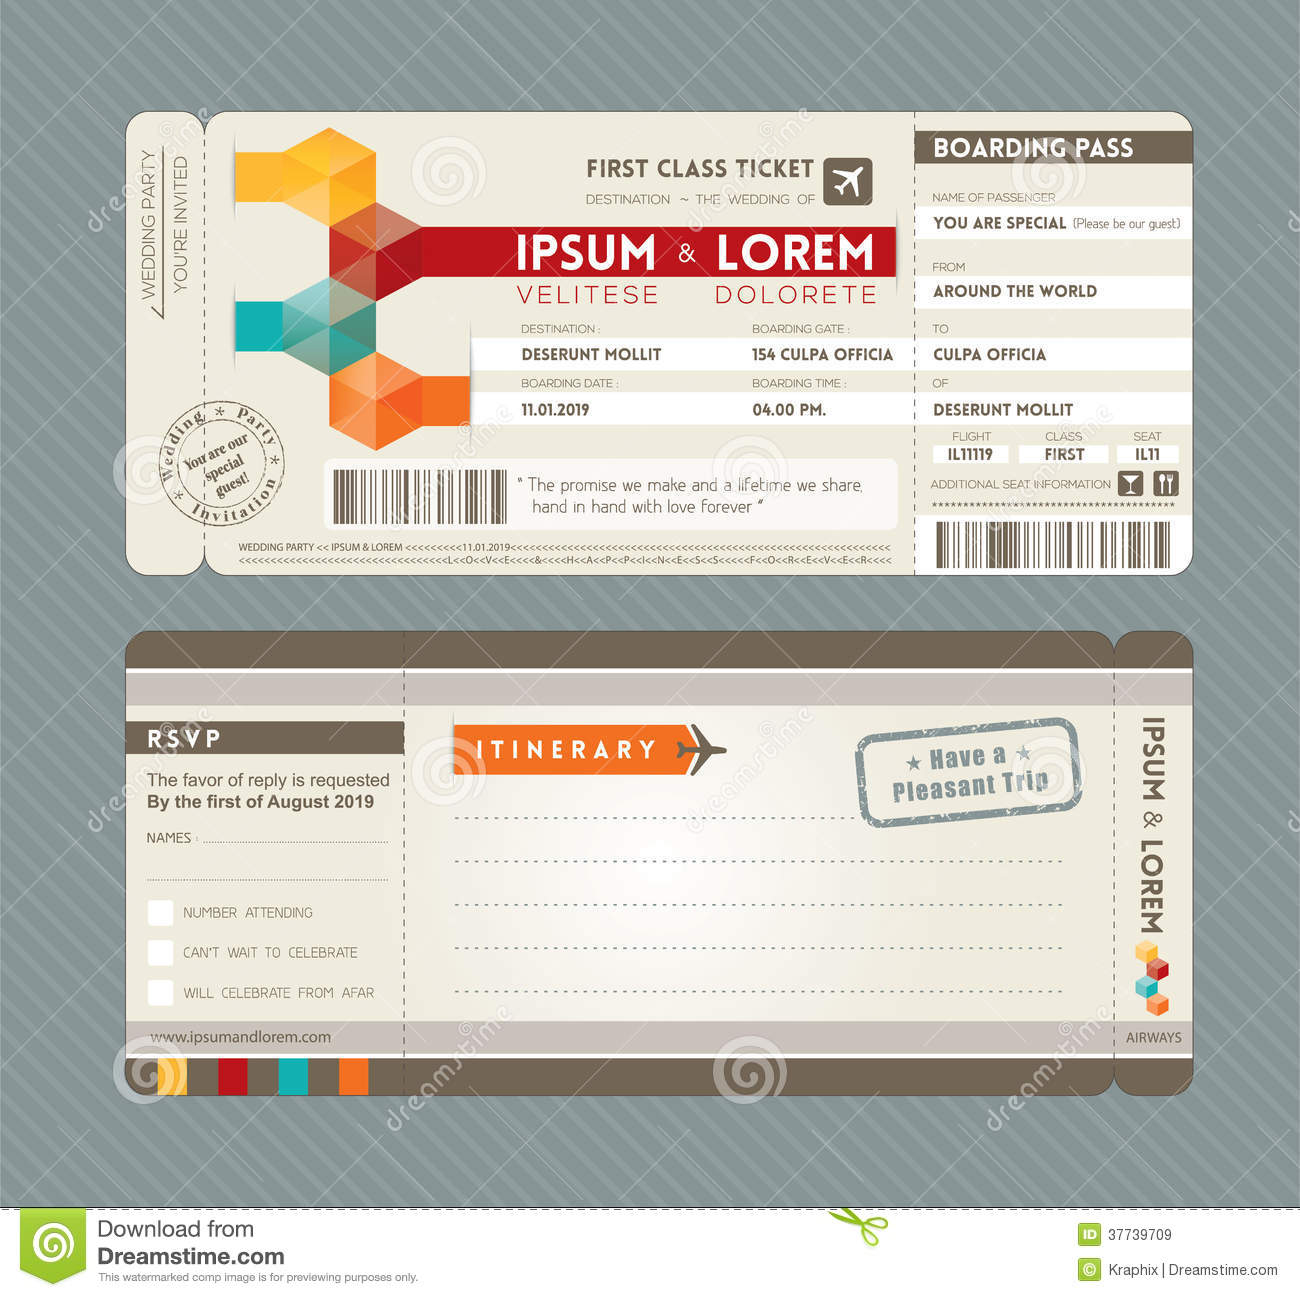 Vintage boarding pass template stopboris Image collections